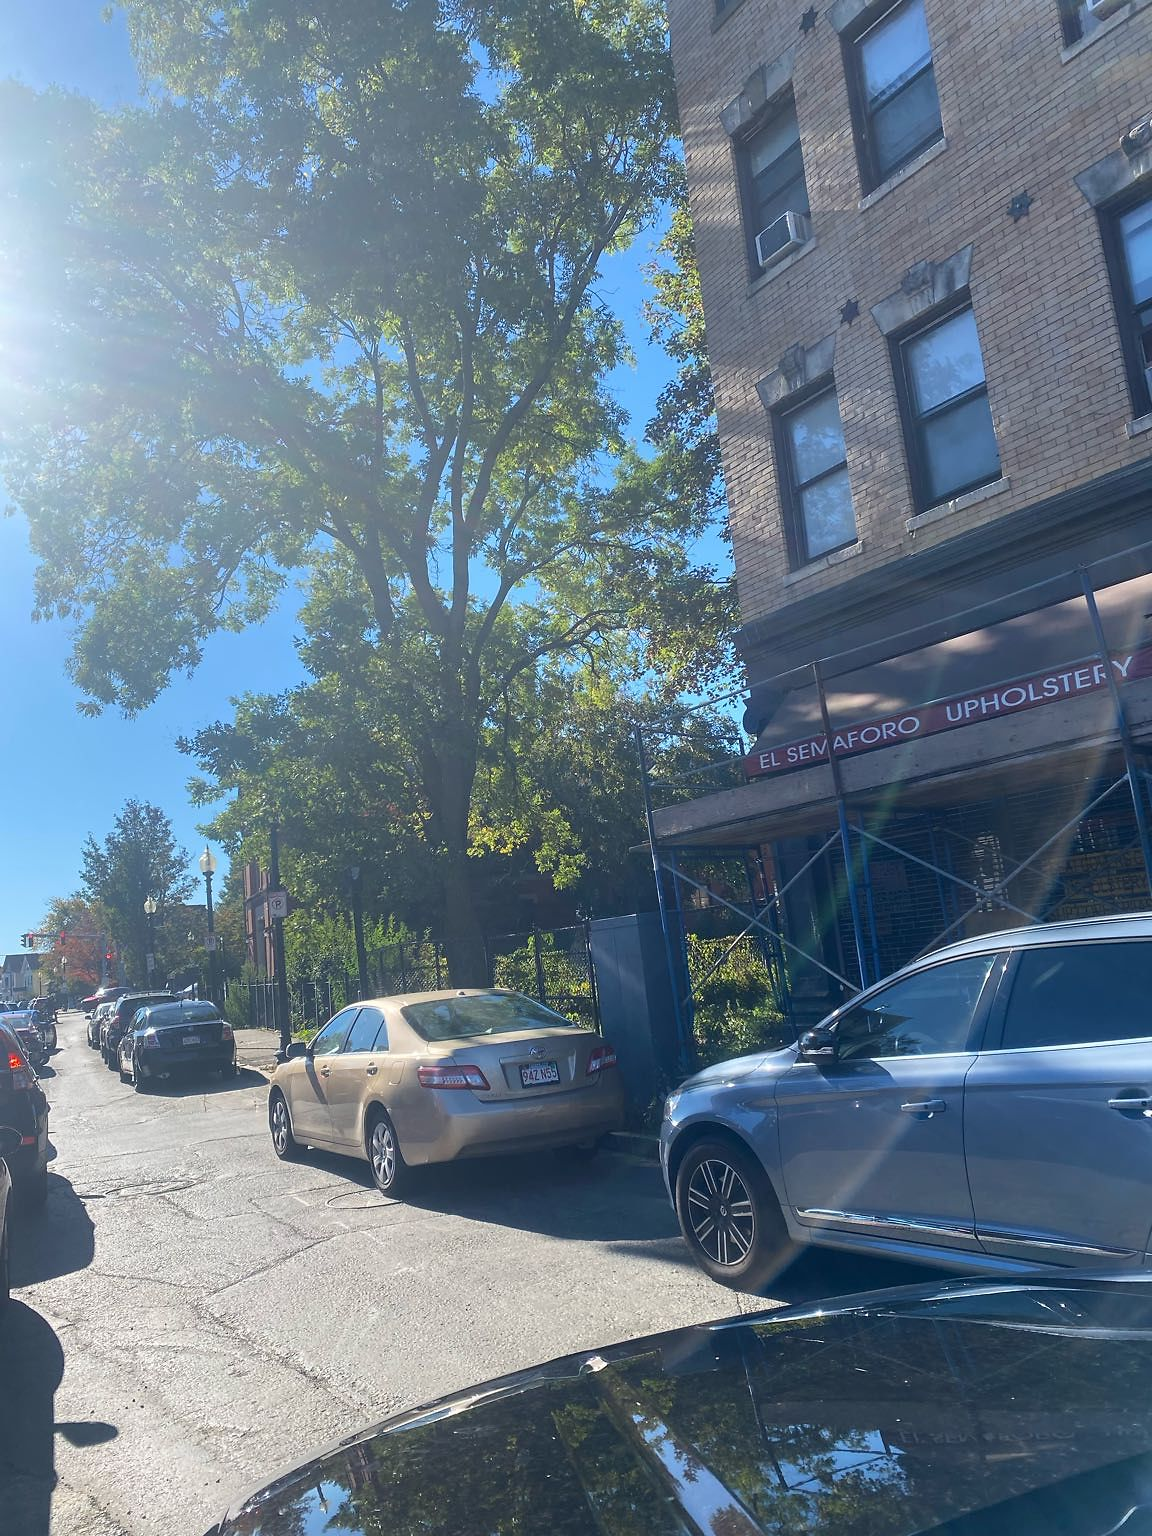 Every weekend, especially Sundays all day cars are parked illegally on both side on the street, including the intersection. Many of the cars are church goers, but some of them are just random illegally parked car. Both sides of the street have clearly…